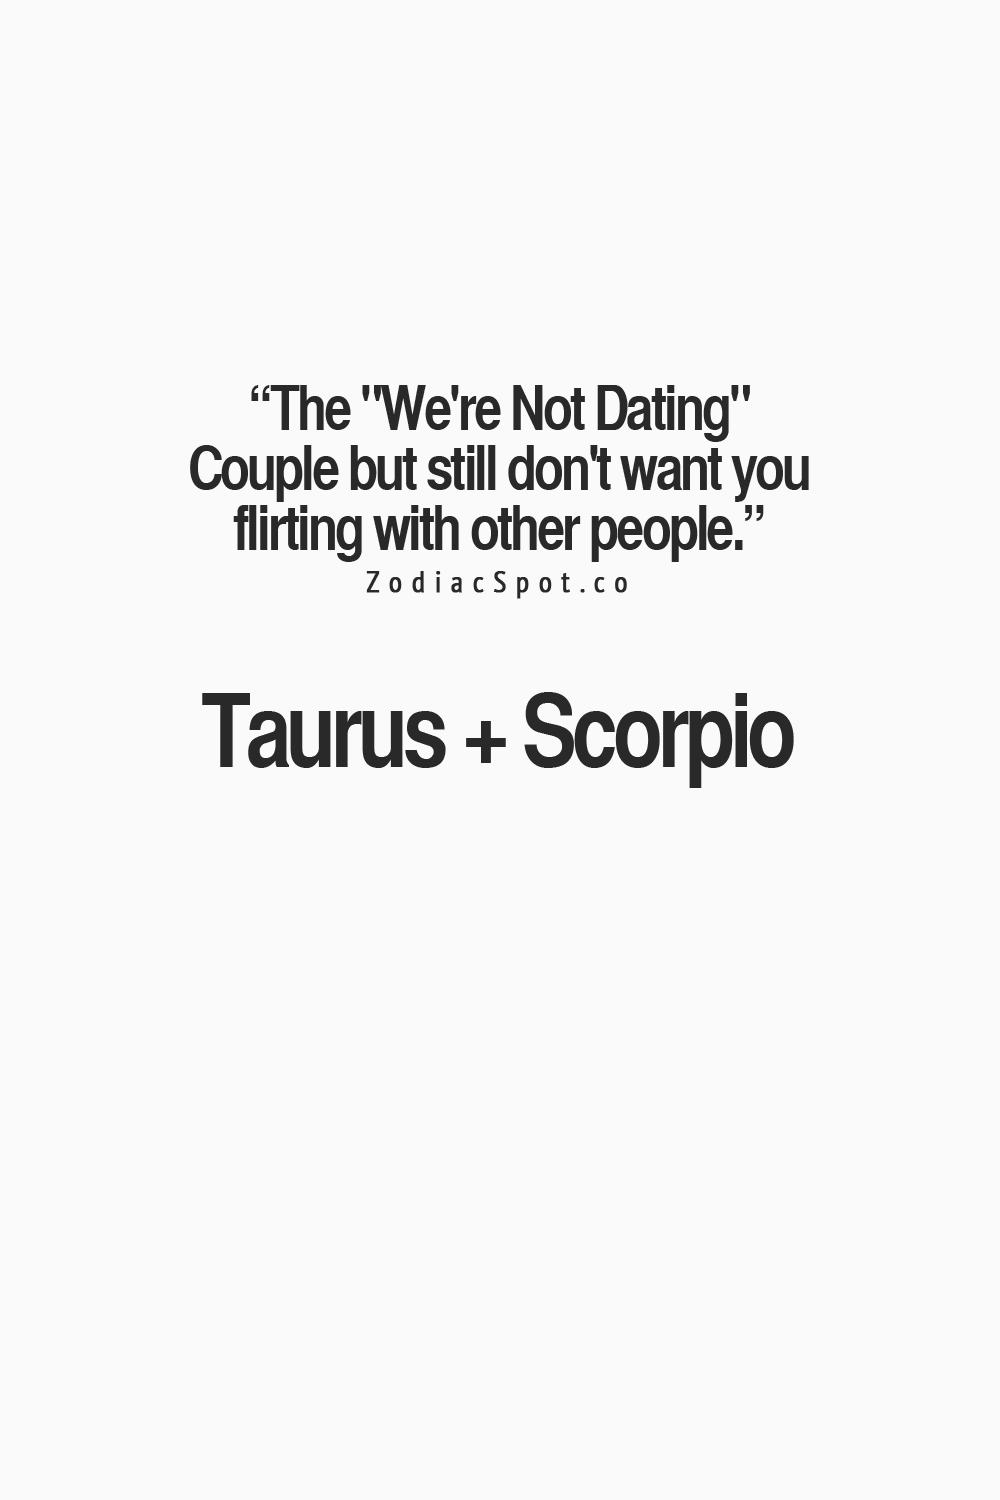 Compatibility with taurus and scorpio